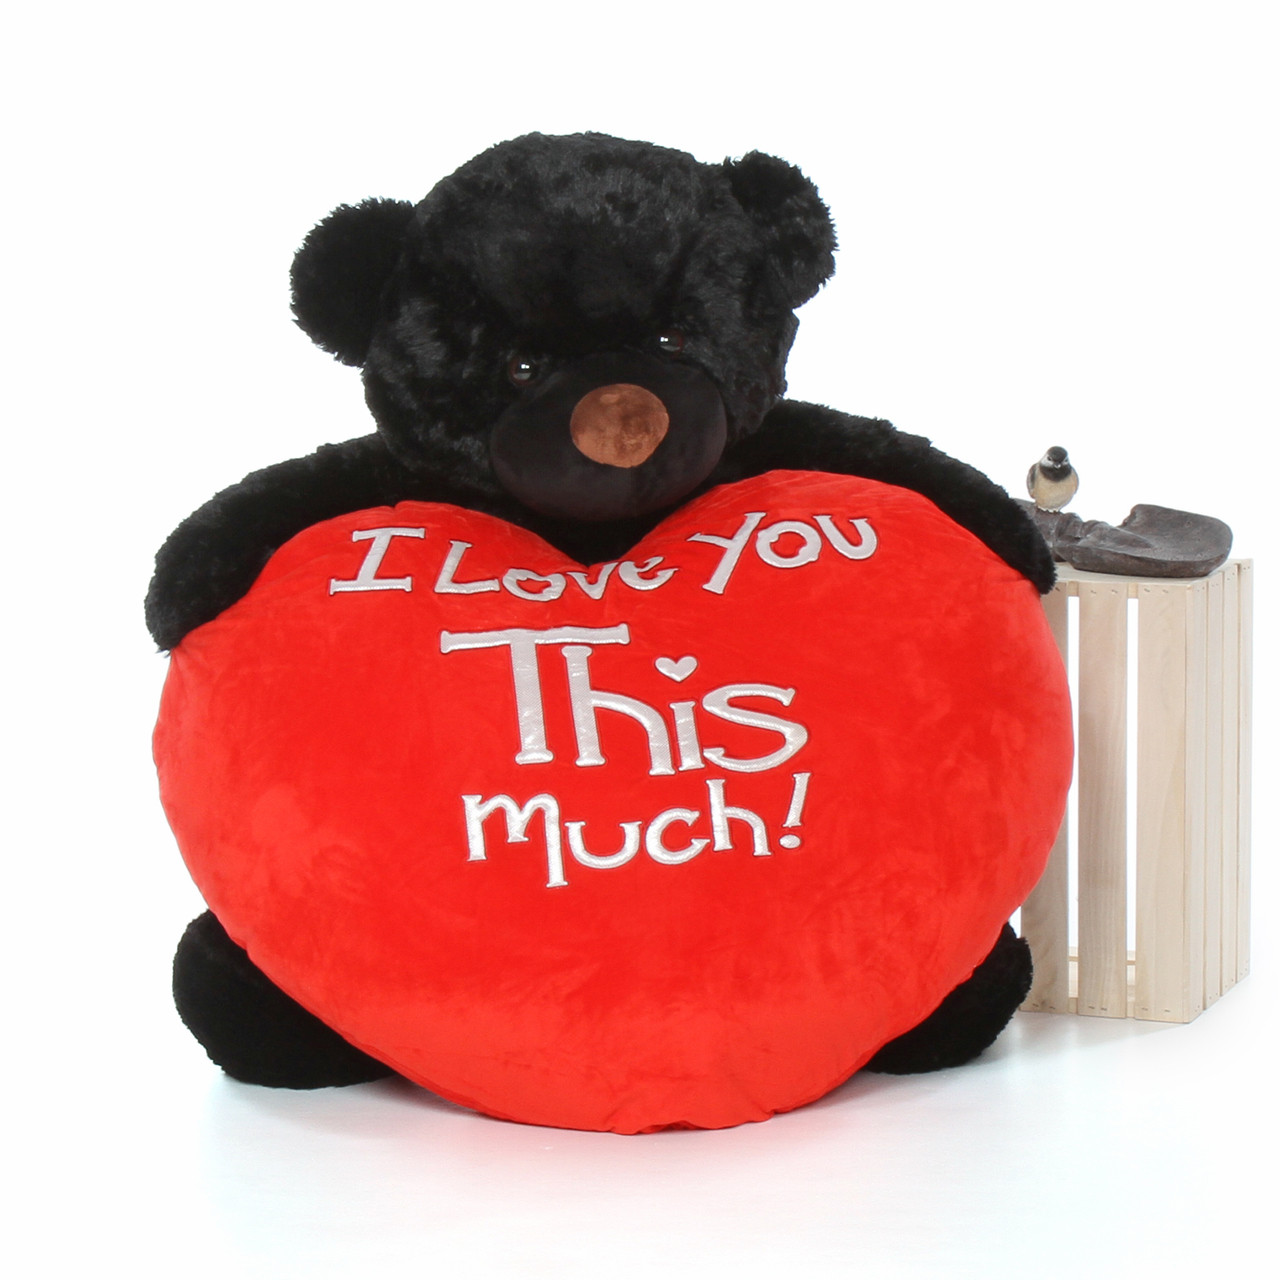 48in adorable Cuddles Life Size Valentine's Day Giant Teddy bear Black Fur Red Plush Heart